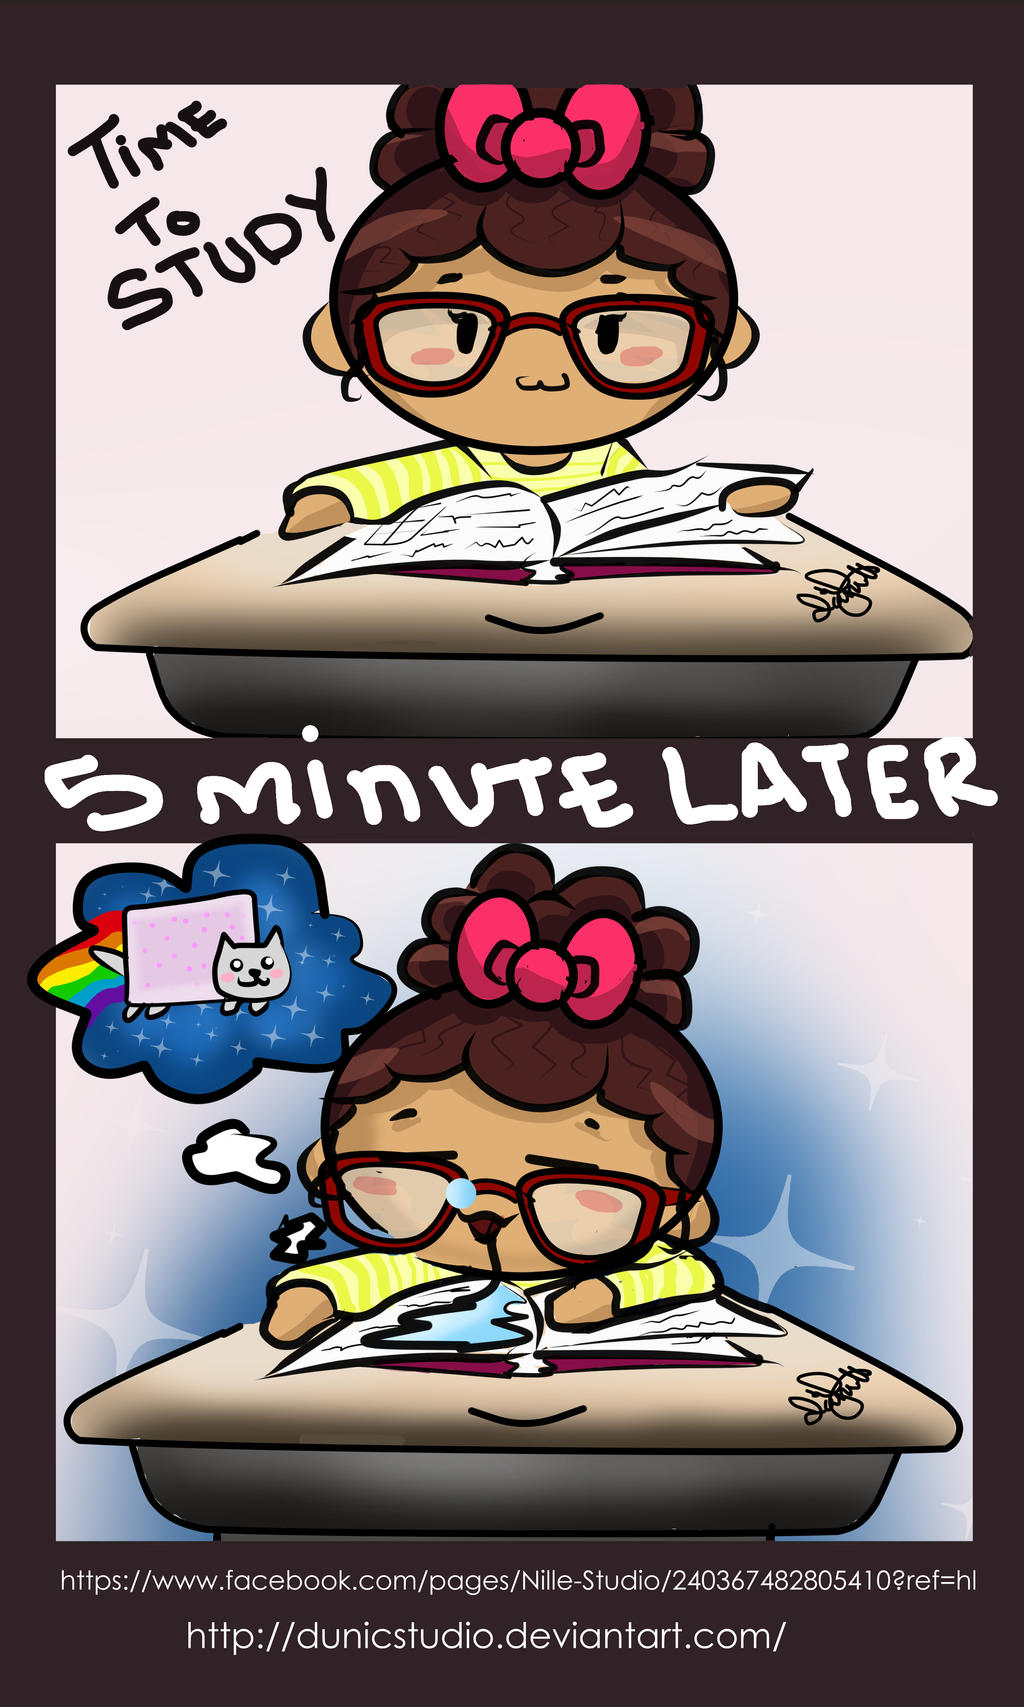 When its time to study by dunicstudio on deviantart when its time to study by dunicstudio altavistaventures Choice Image